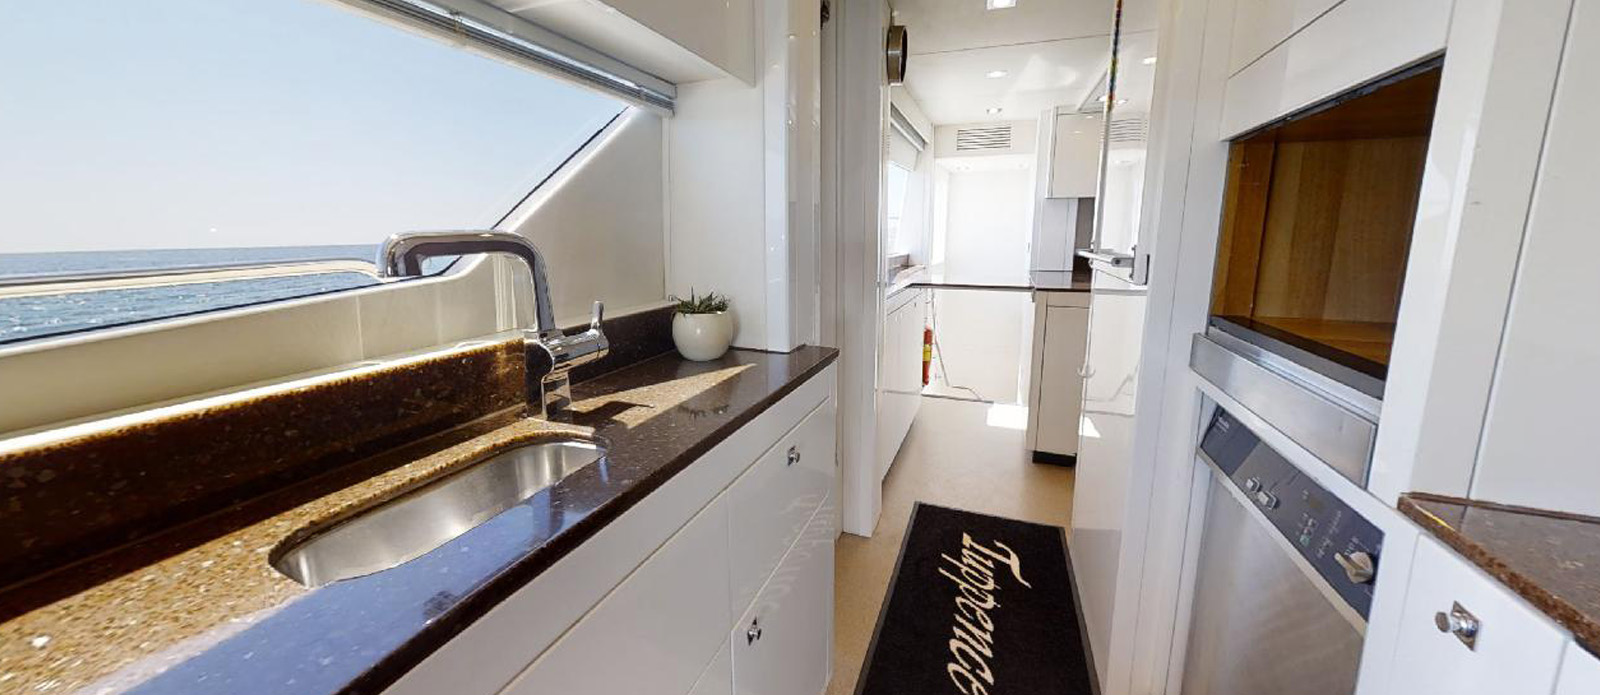 Sunseeker 30 Metre Yacht - Galley 2 - Tuppence